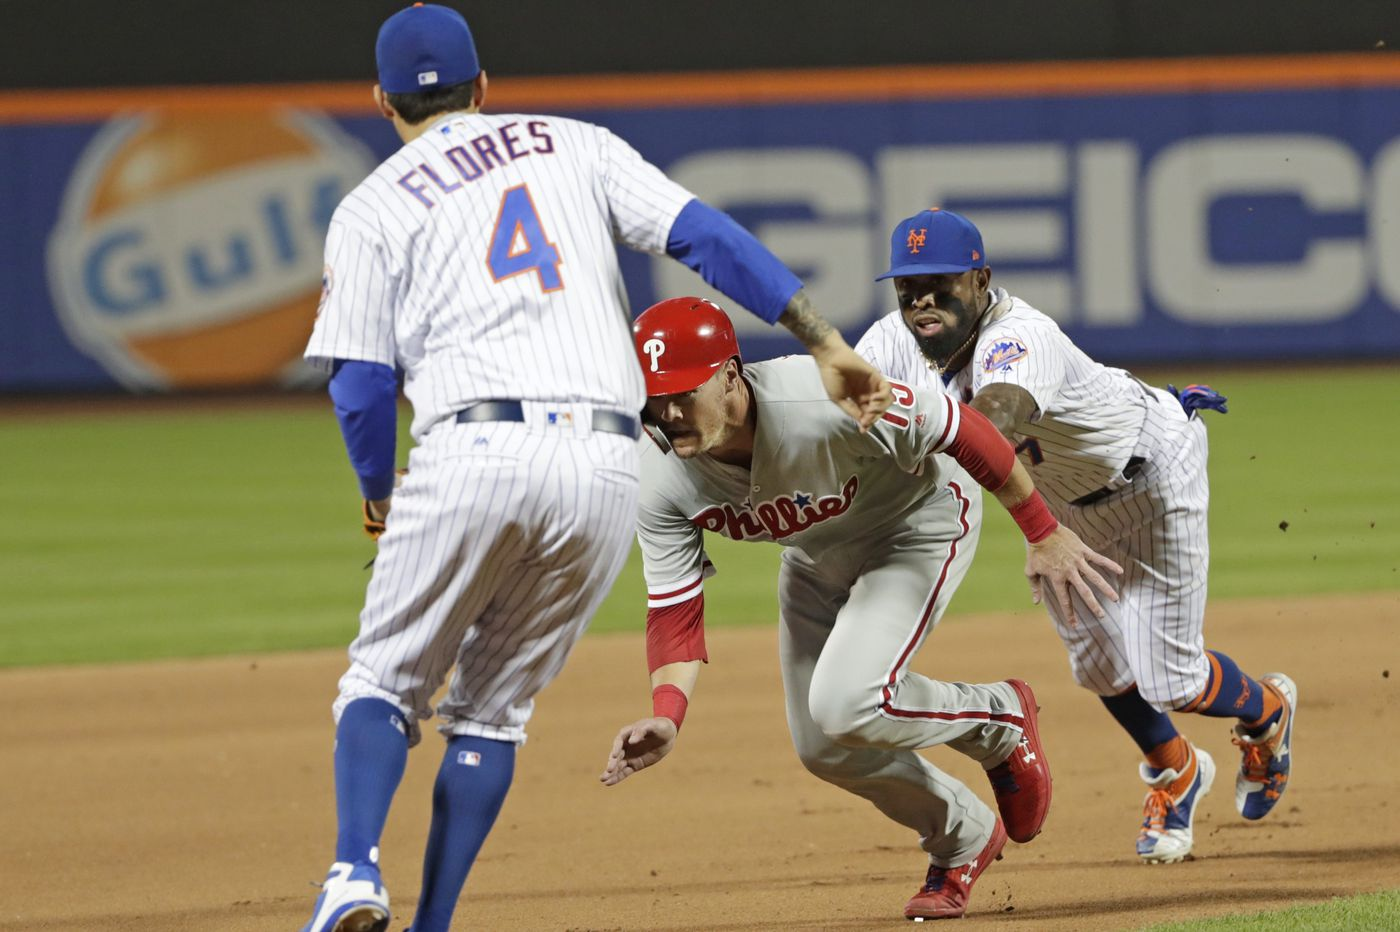 Phillies fall to Mets on homer in 10th inning, waste Vince Velasquez's strong outing